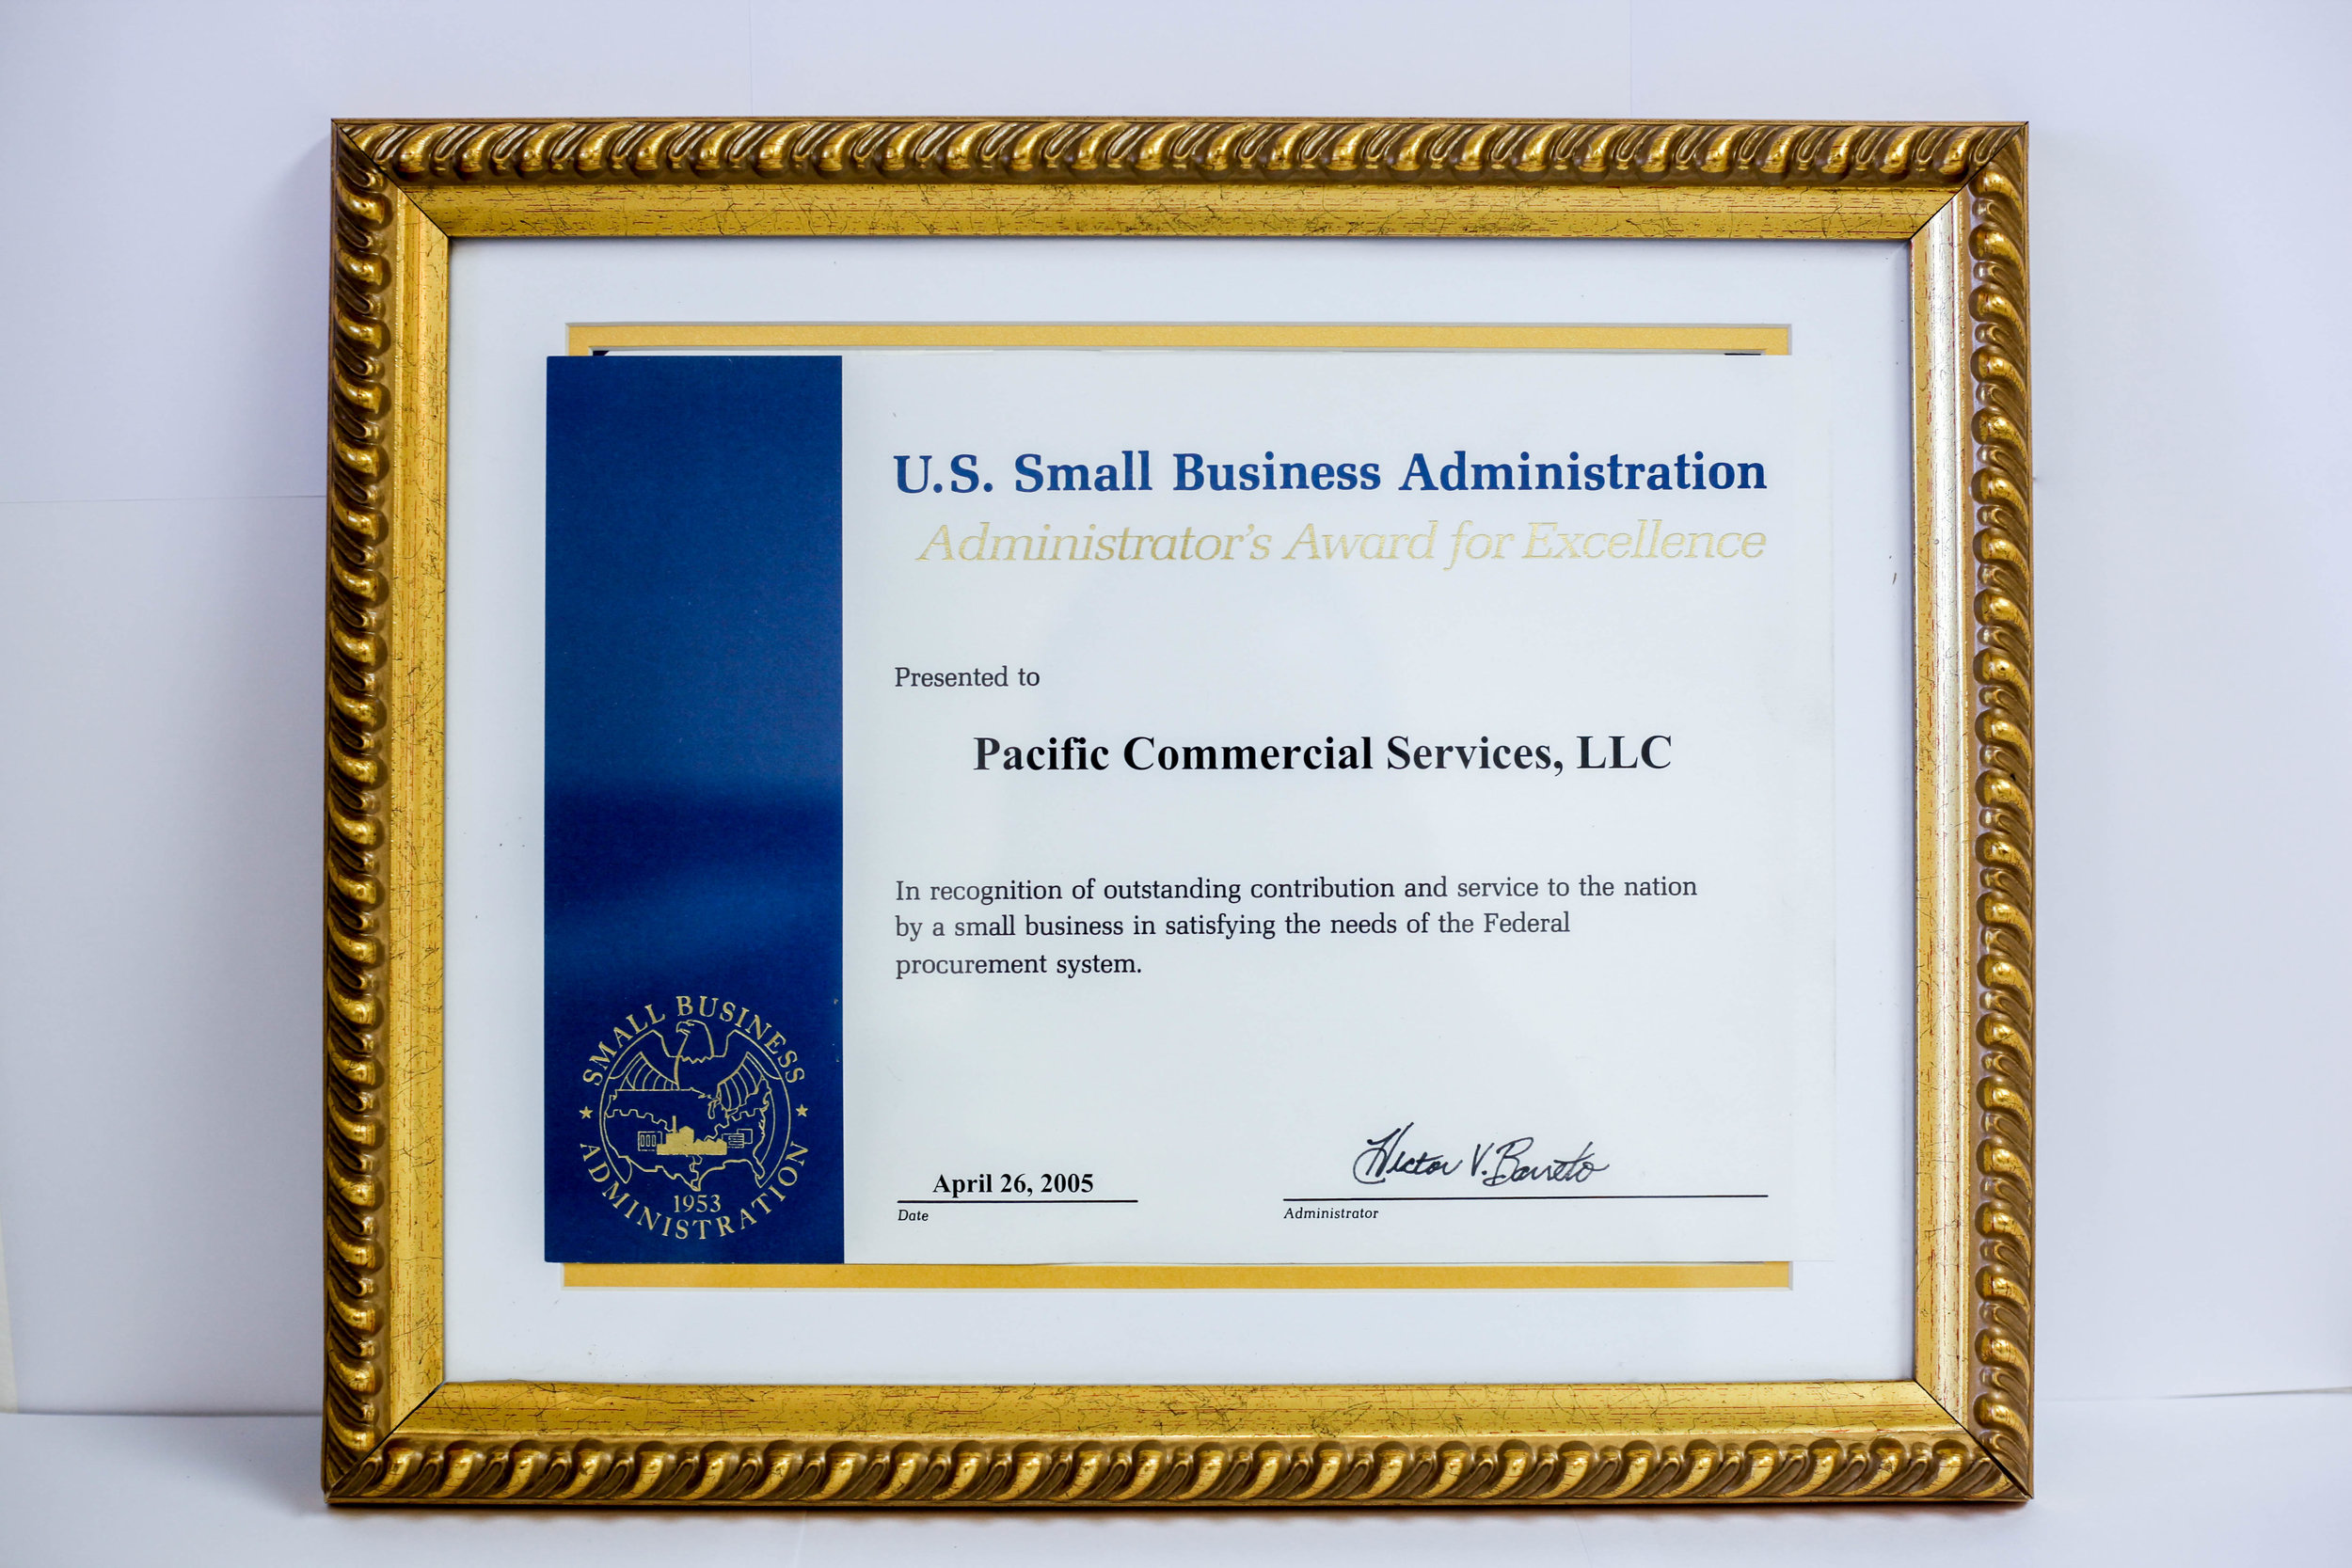 2005 U.S. SBA Award of Excellence - Awarded by the U.S. Small Business Administration